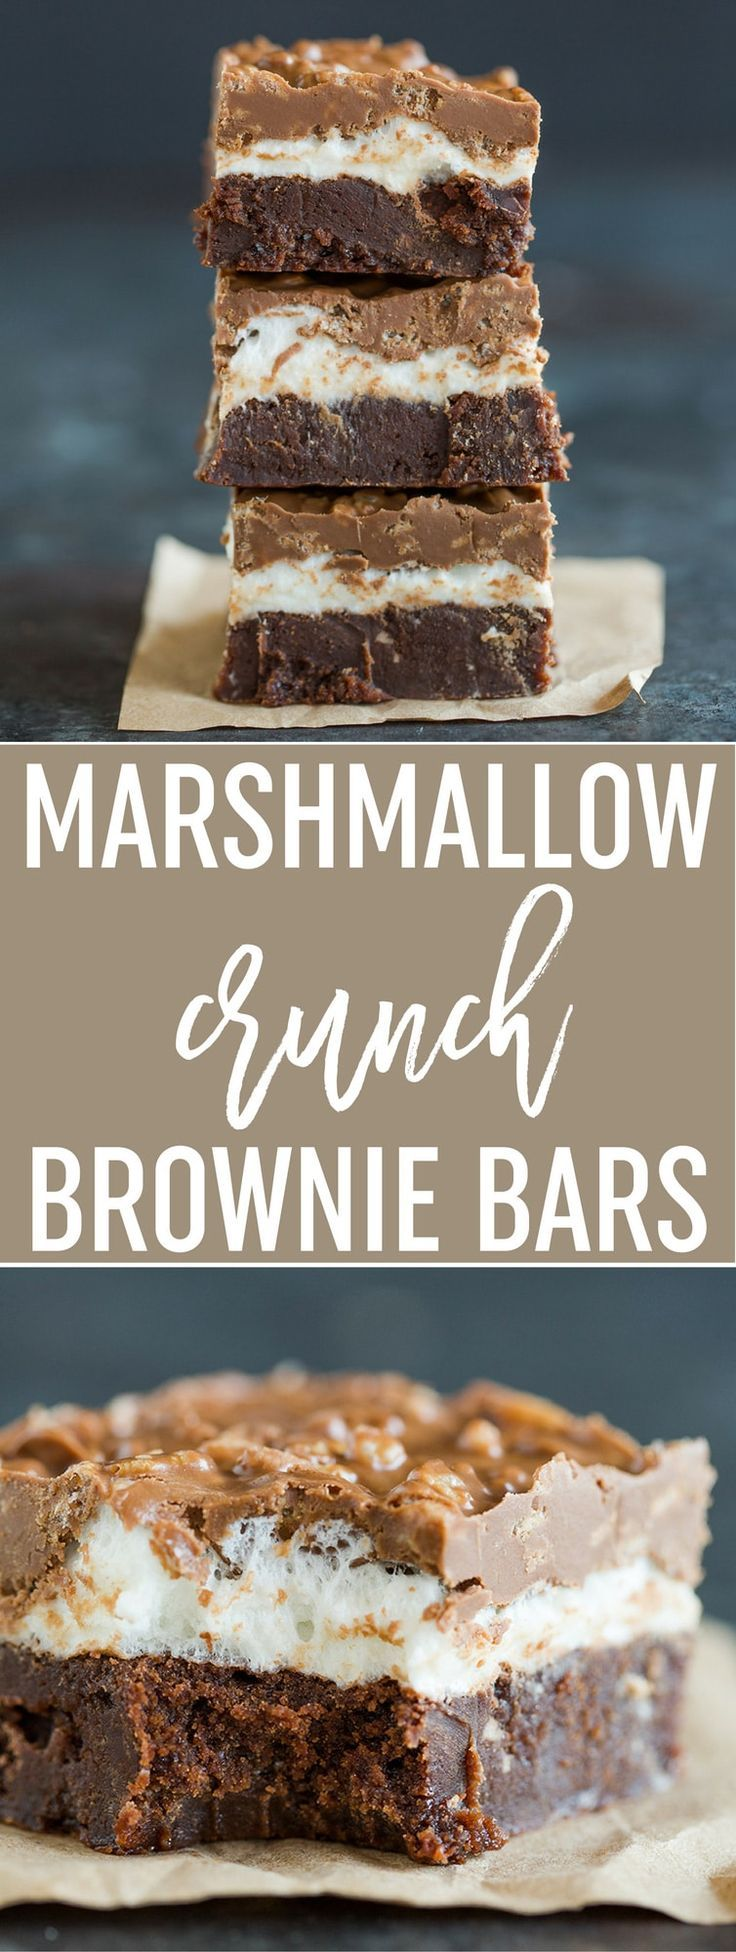 Marshmallow Crunch Brownie Bars - Super fudgy brownies topped with a marshmallow layer and a chocolate, peanut butter and Rice Krispies mixture. A huge crowd favorite! via @browneyedbaker